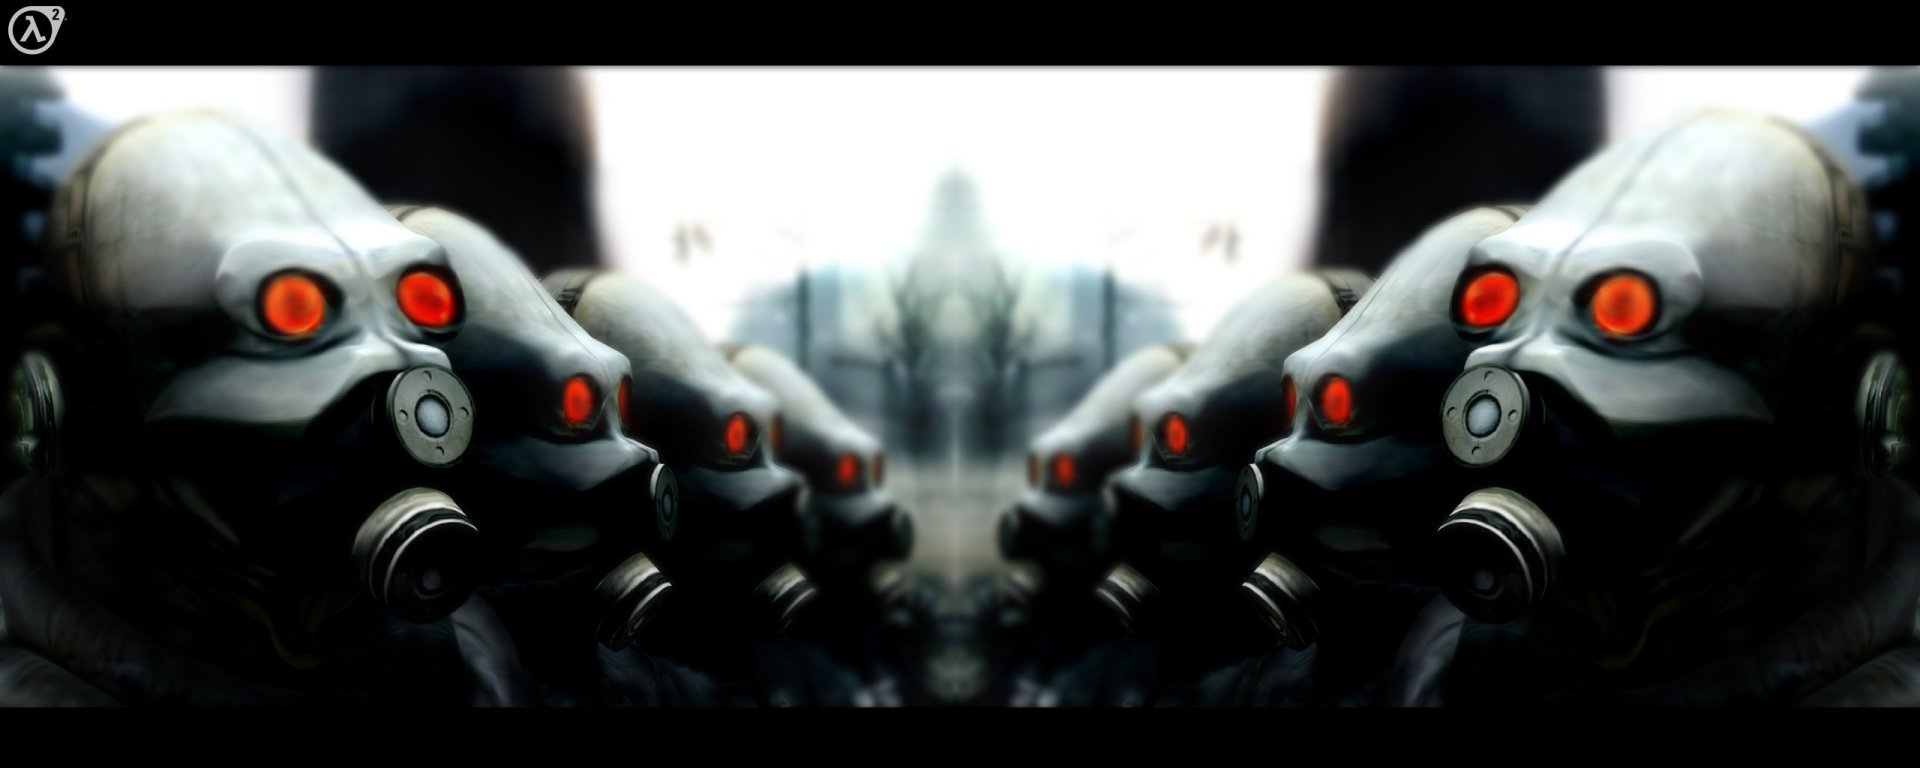 Multi Monitor - Videospiel  Halflife Life Half Wallpaper